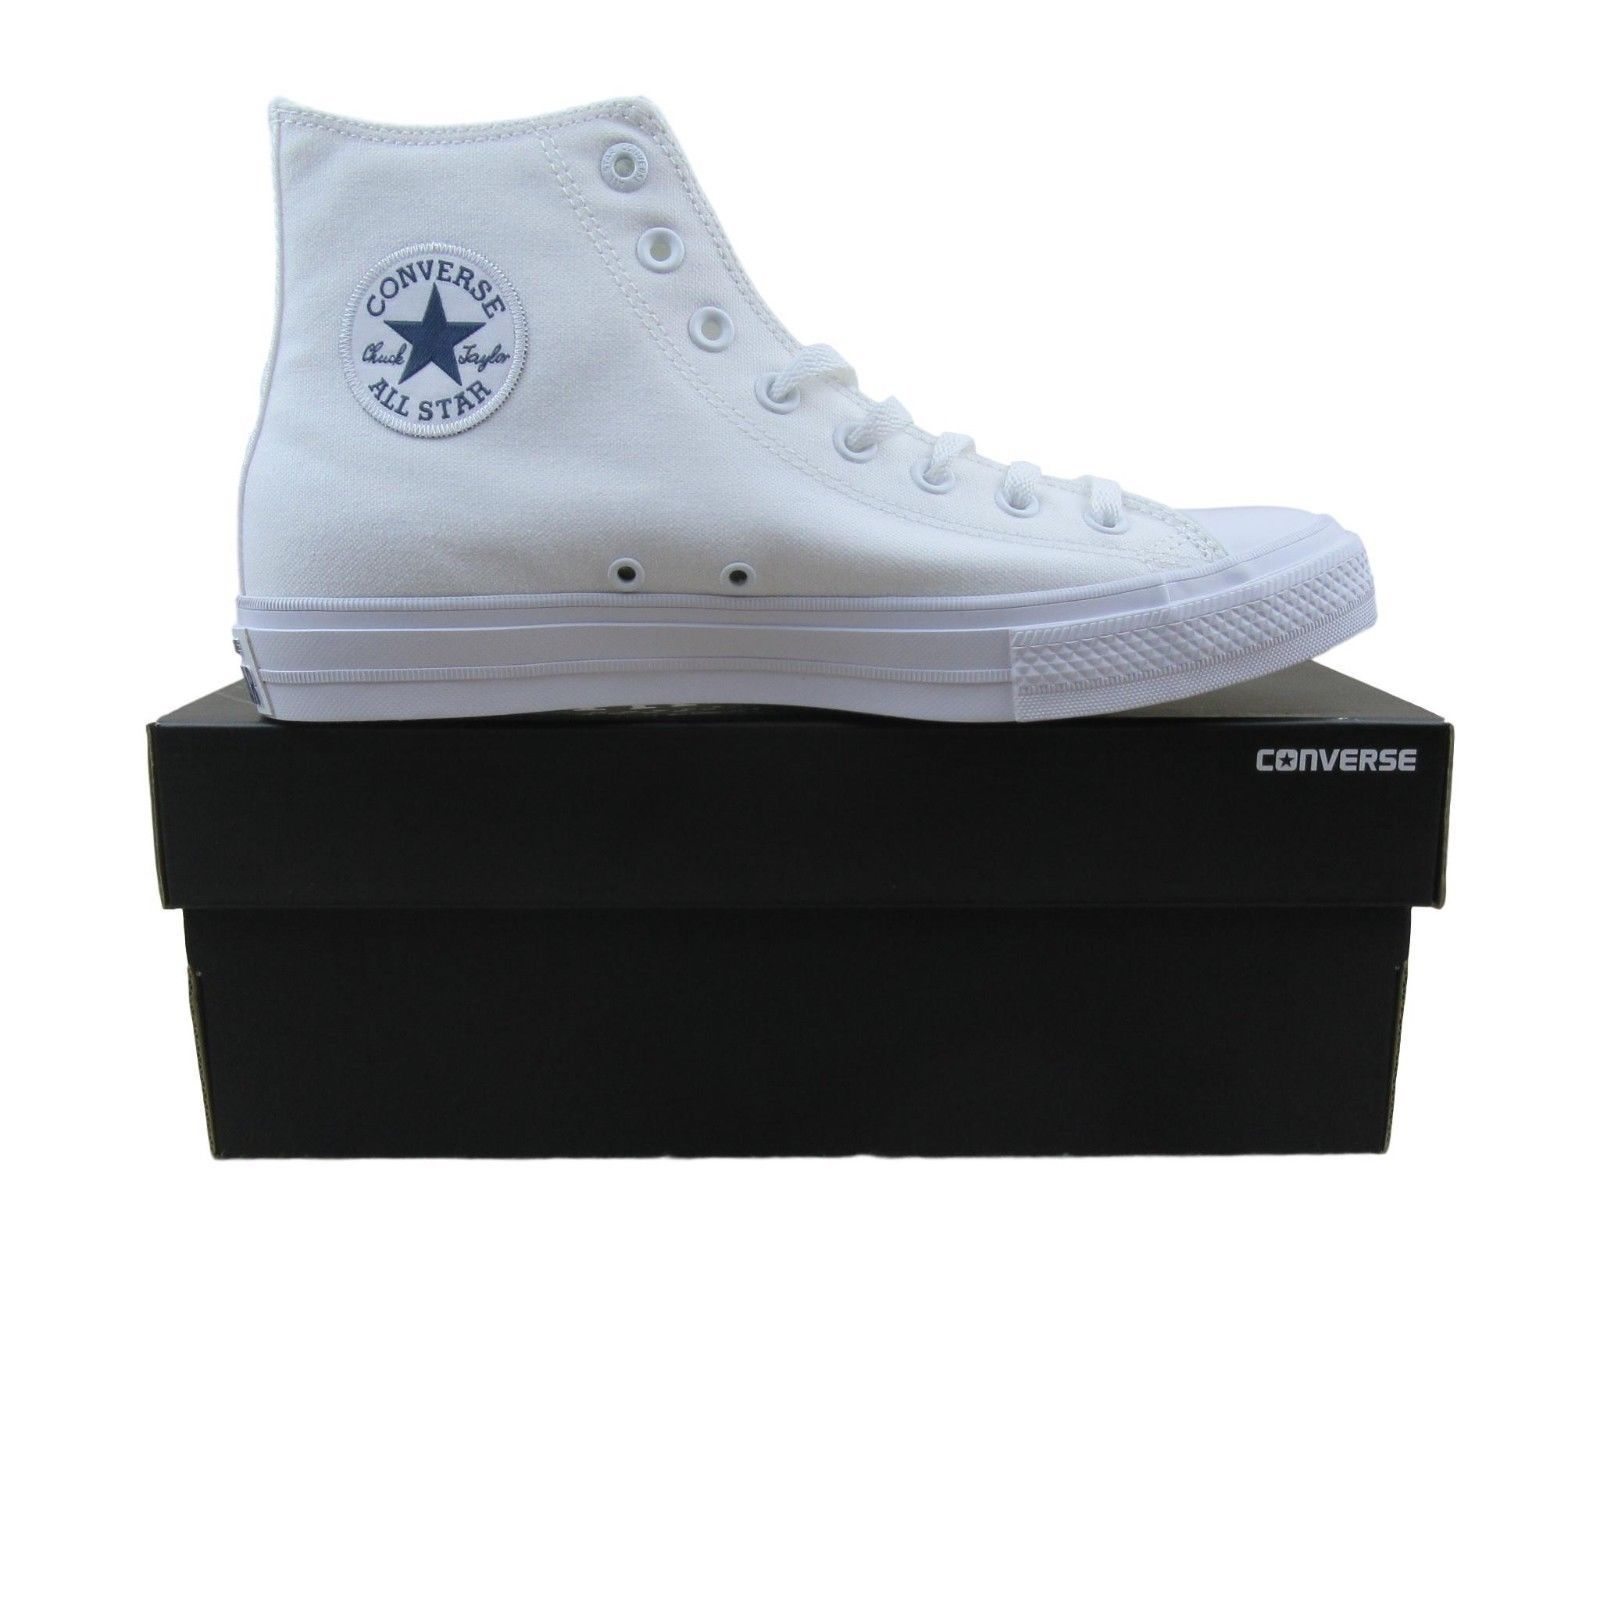 75770bee85108 Converse Chuck Taylor All Star II Hi Shoes Lunarlon White 150148C ...